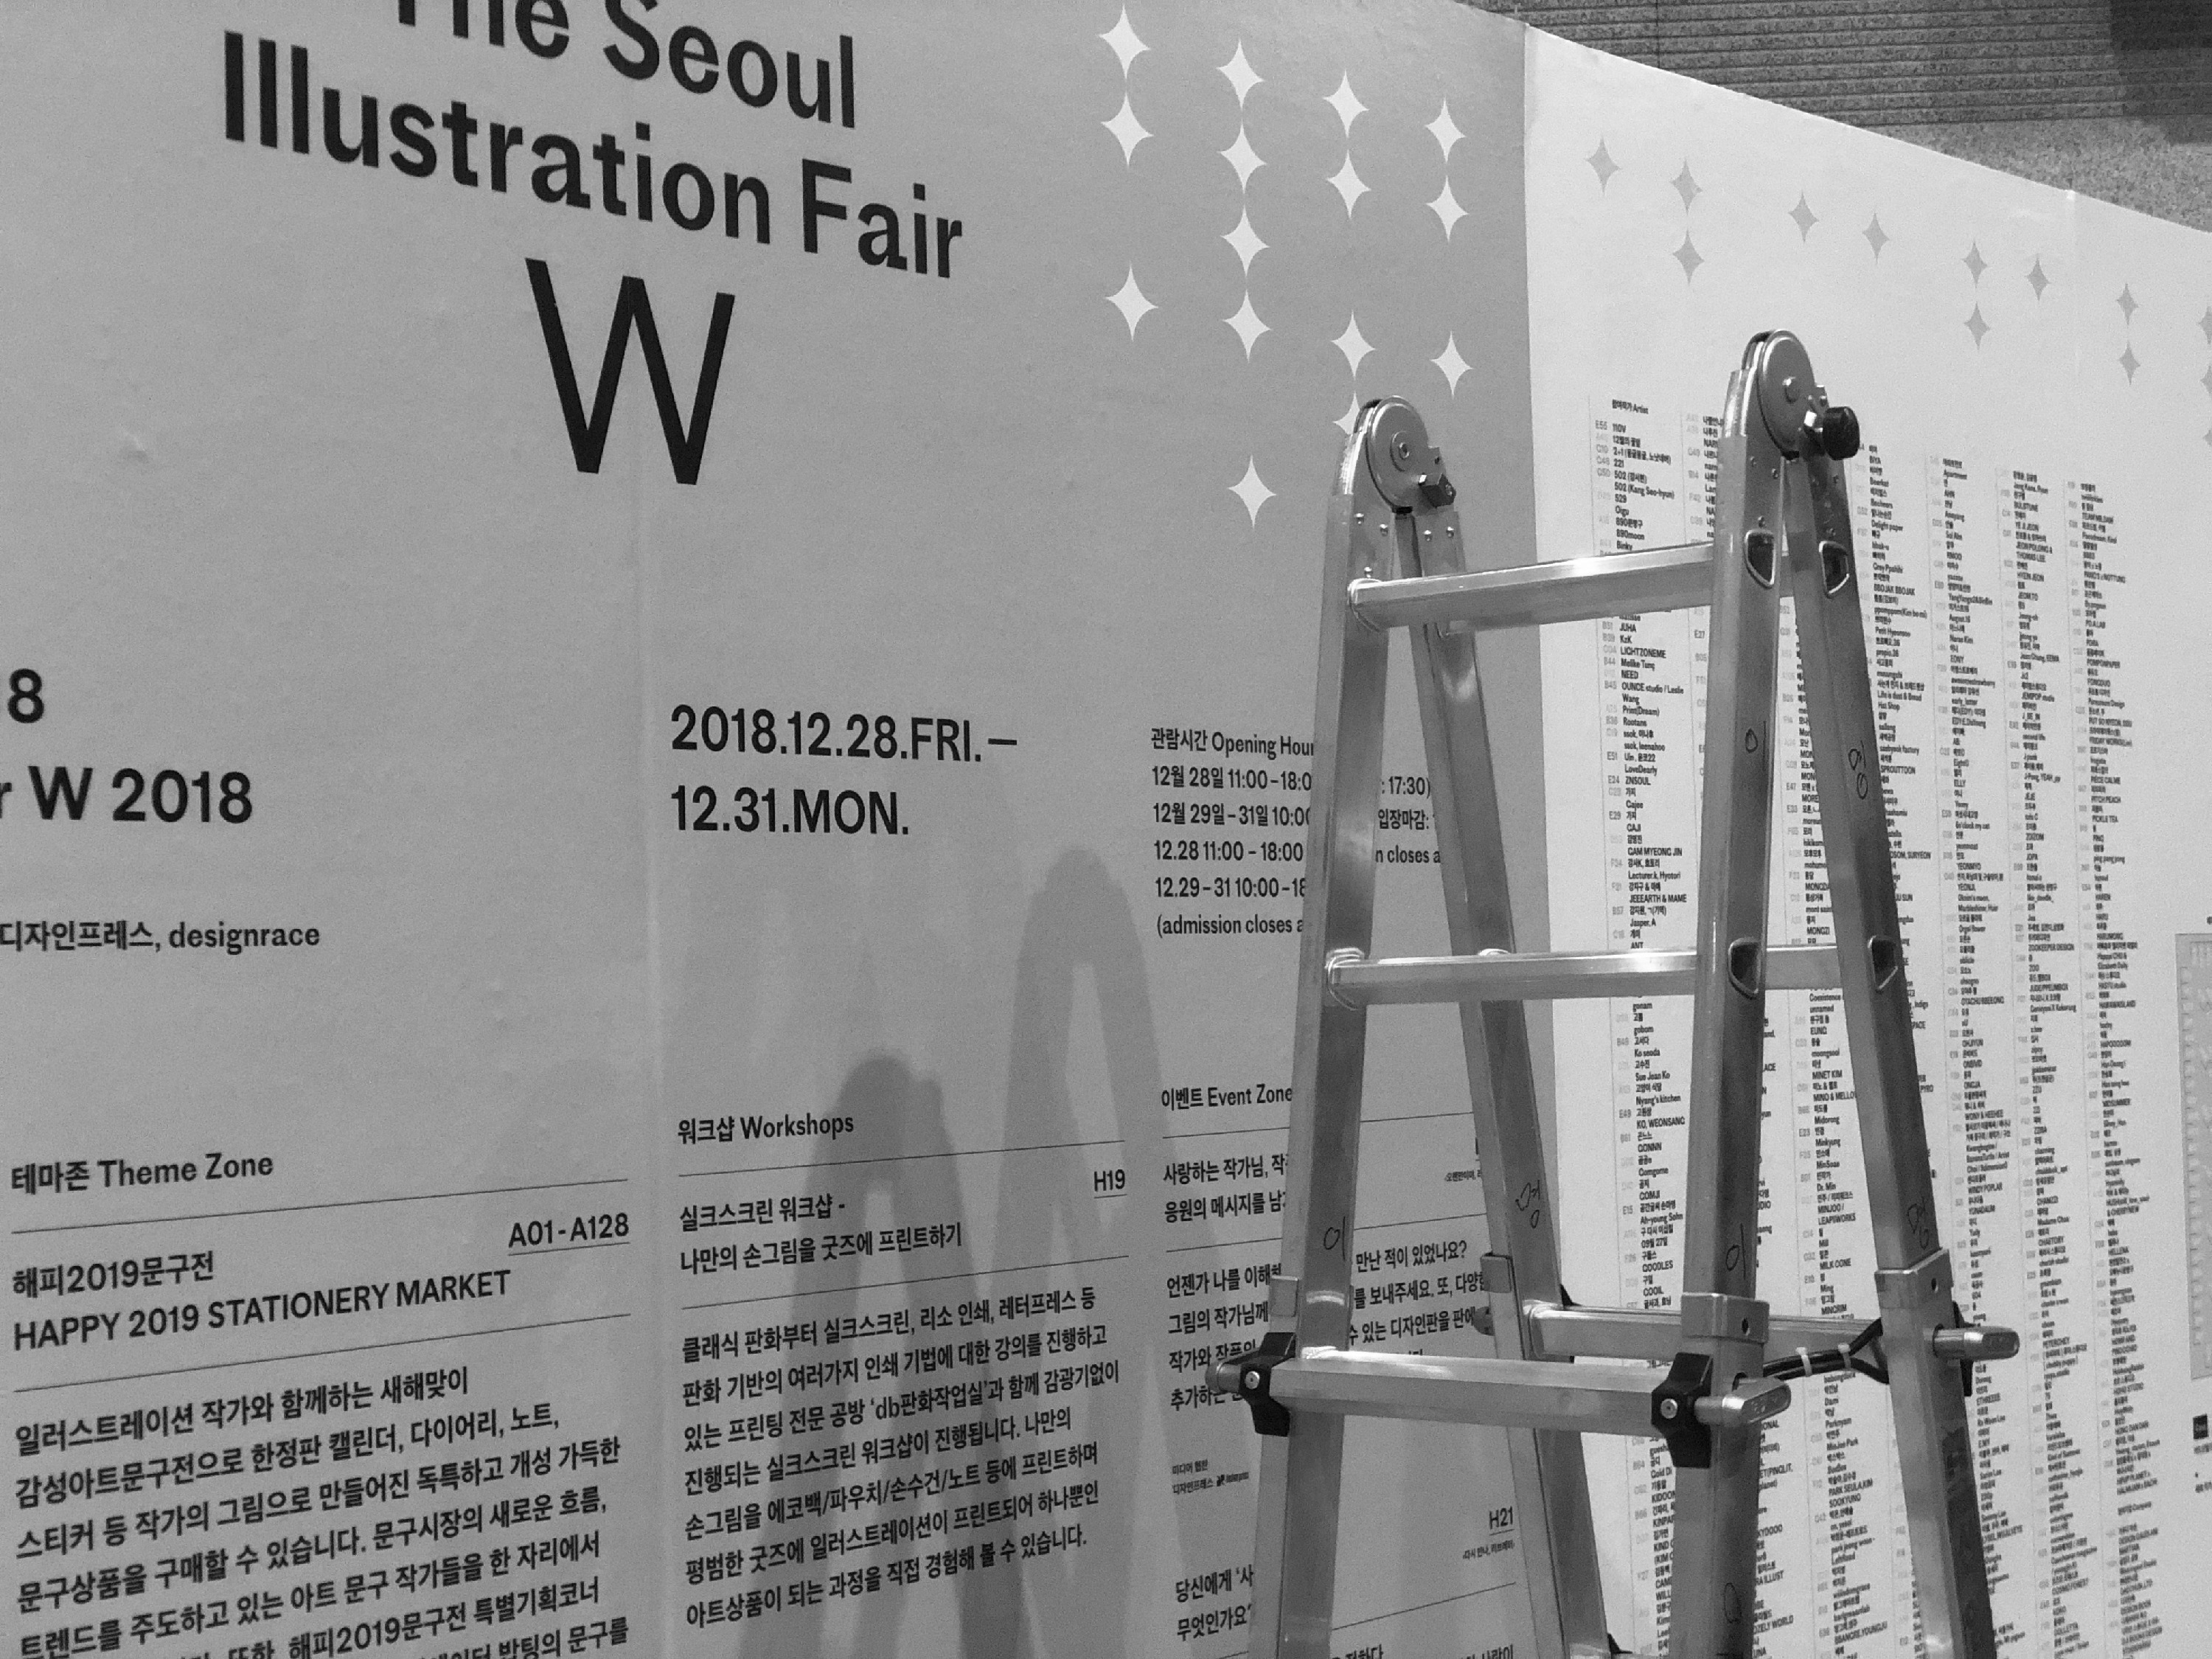 2018 Seoul Illustration Fair W